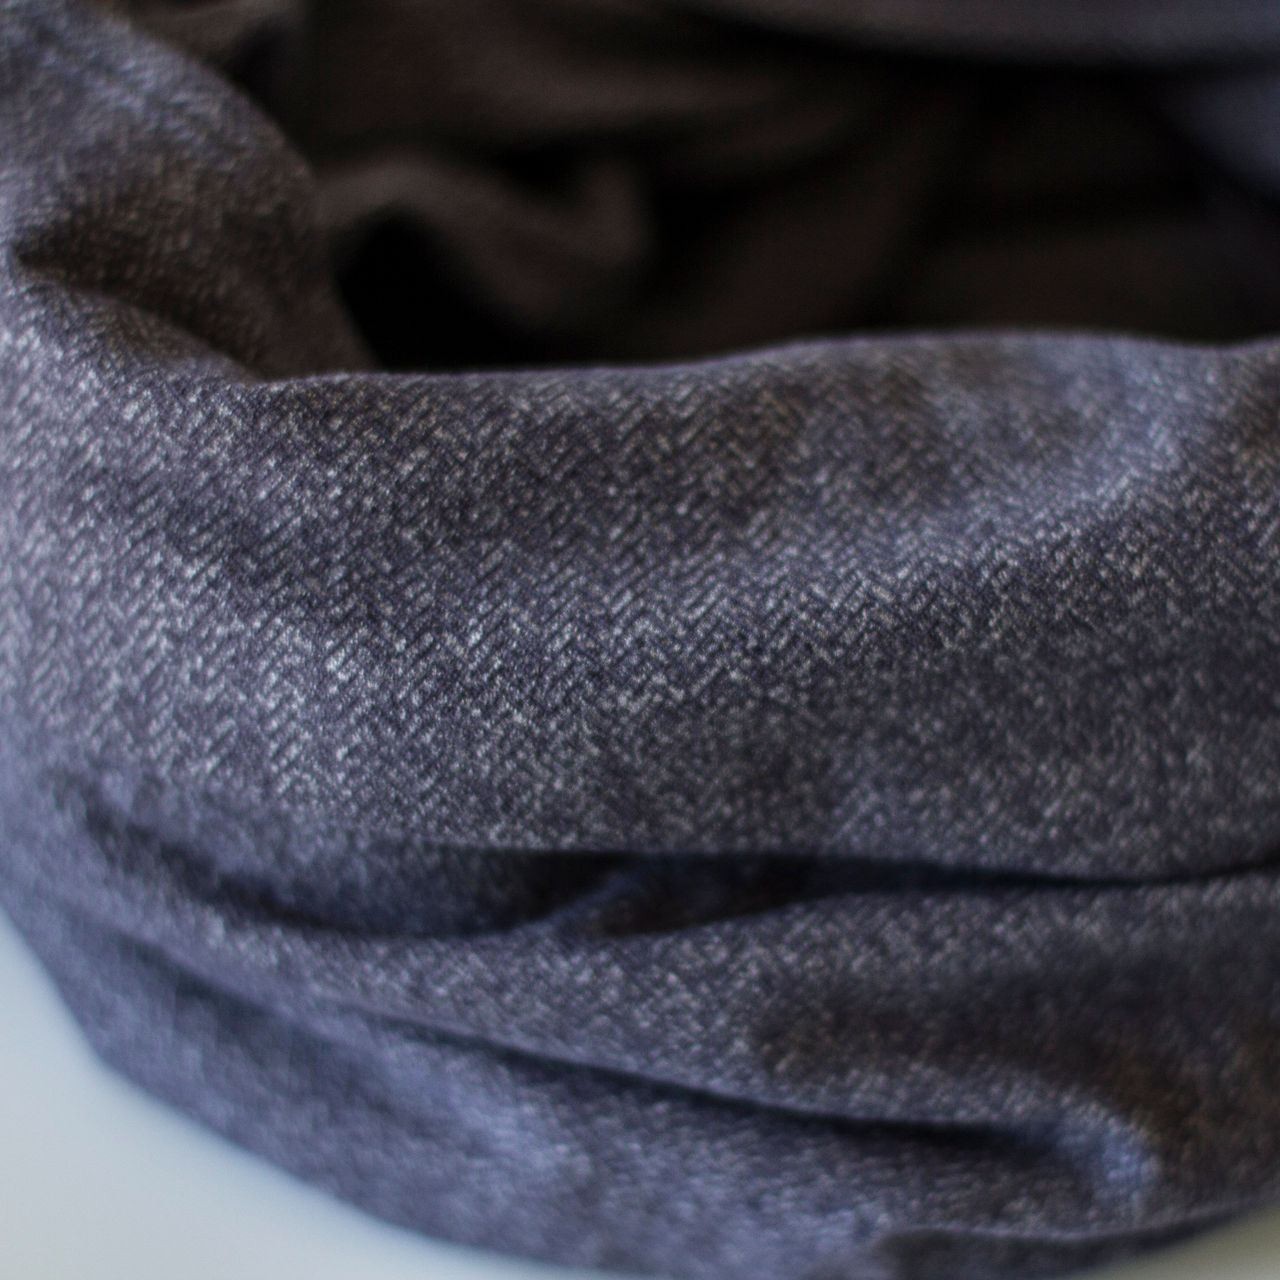 Lululemon Vinyasa Scarf *Rulu - Heathered Herringbone Heathered Black Grape Nightfall